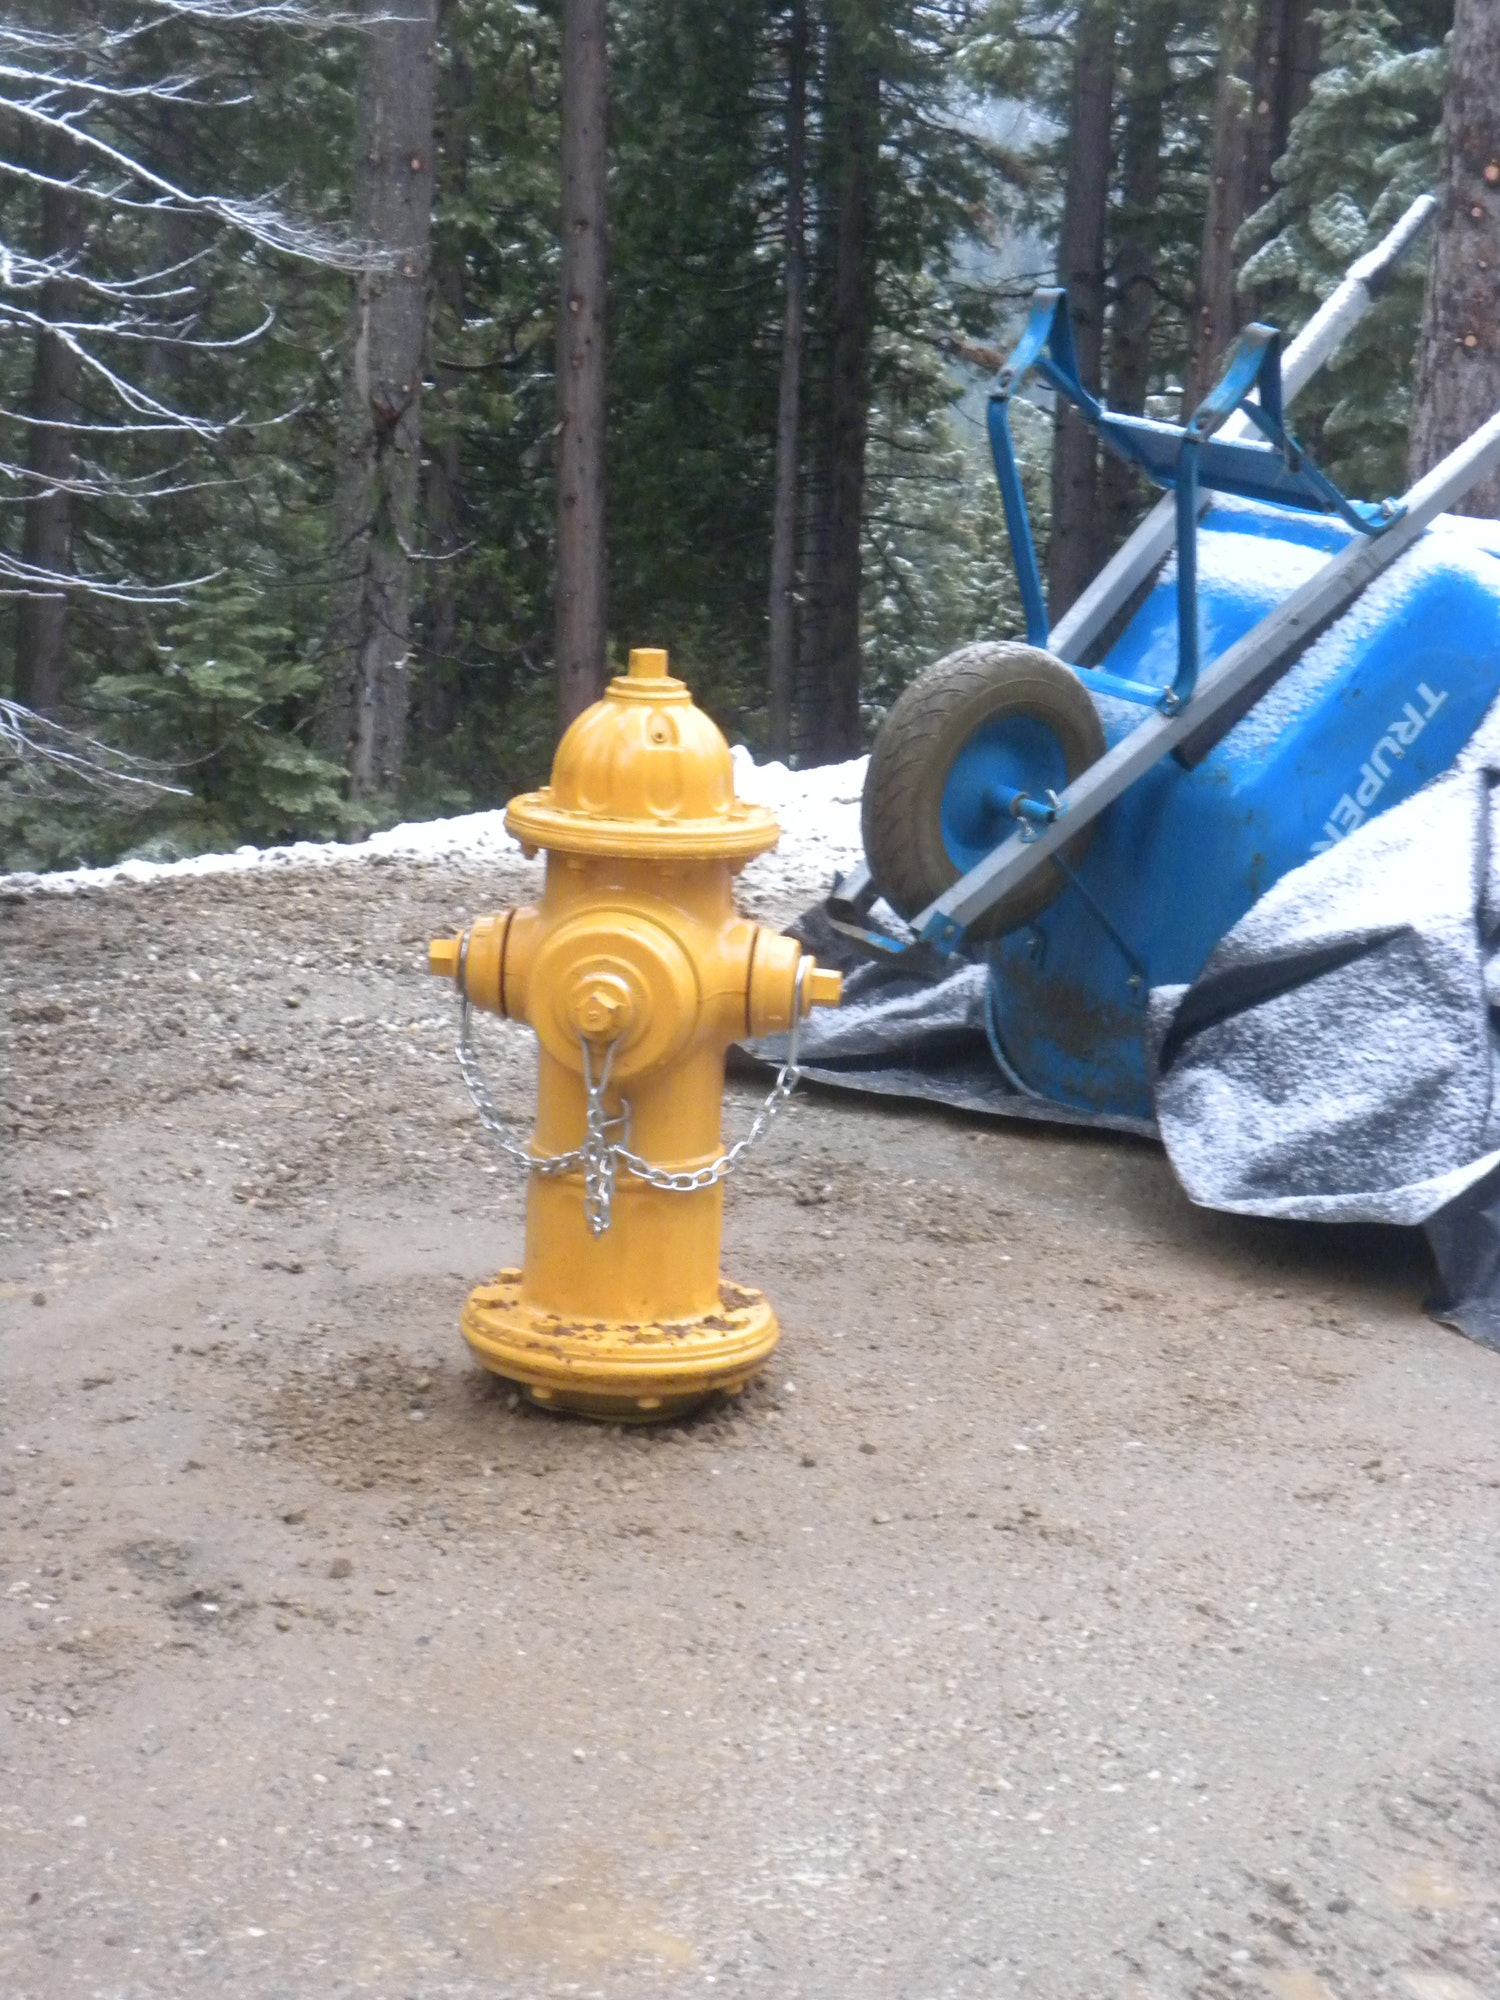 The newest member of Alleghany's fire hydrant family, located at the tank site. Dec. 5, 2018